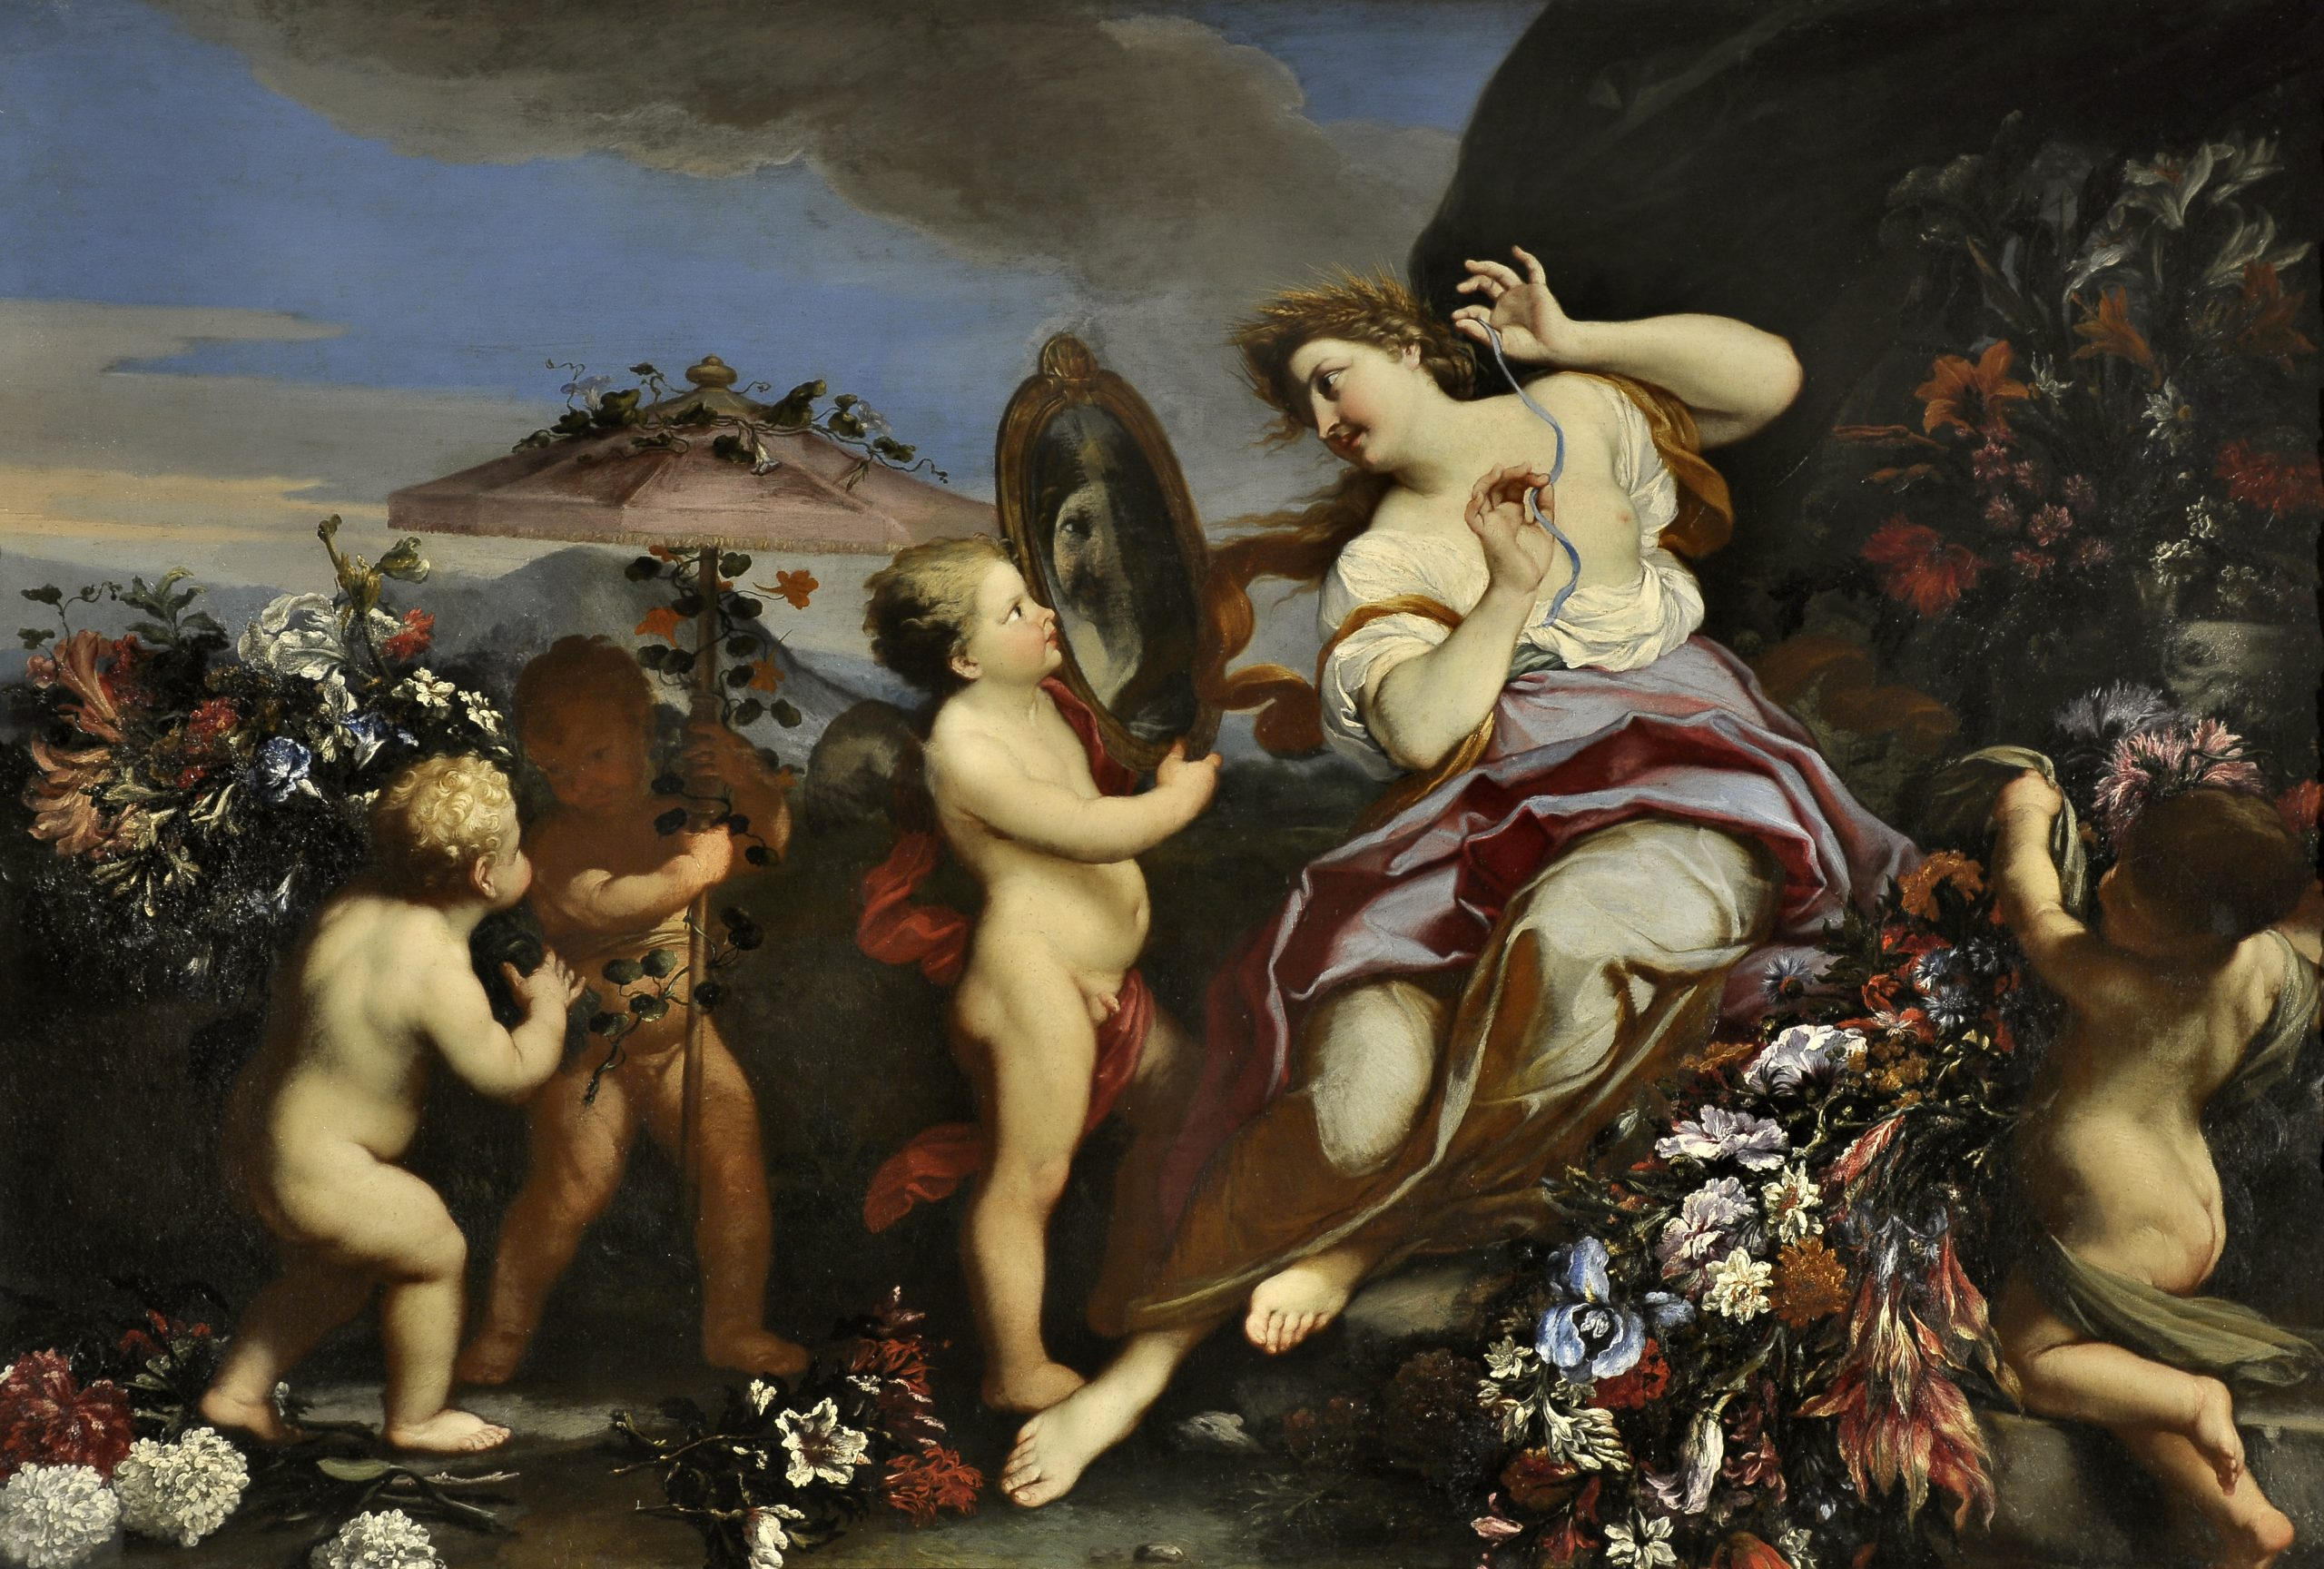 A woman, surrounded by flowers and cherubs, gazes into a mirror